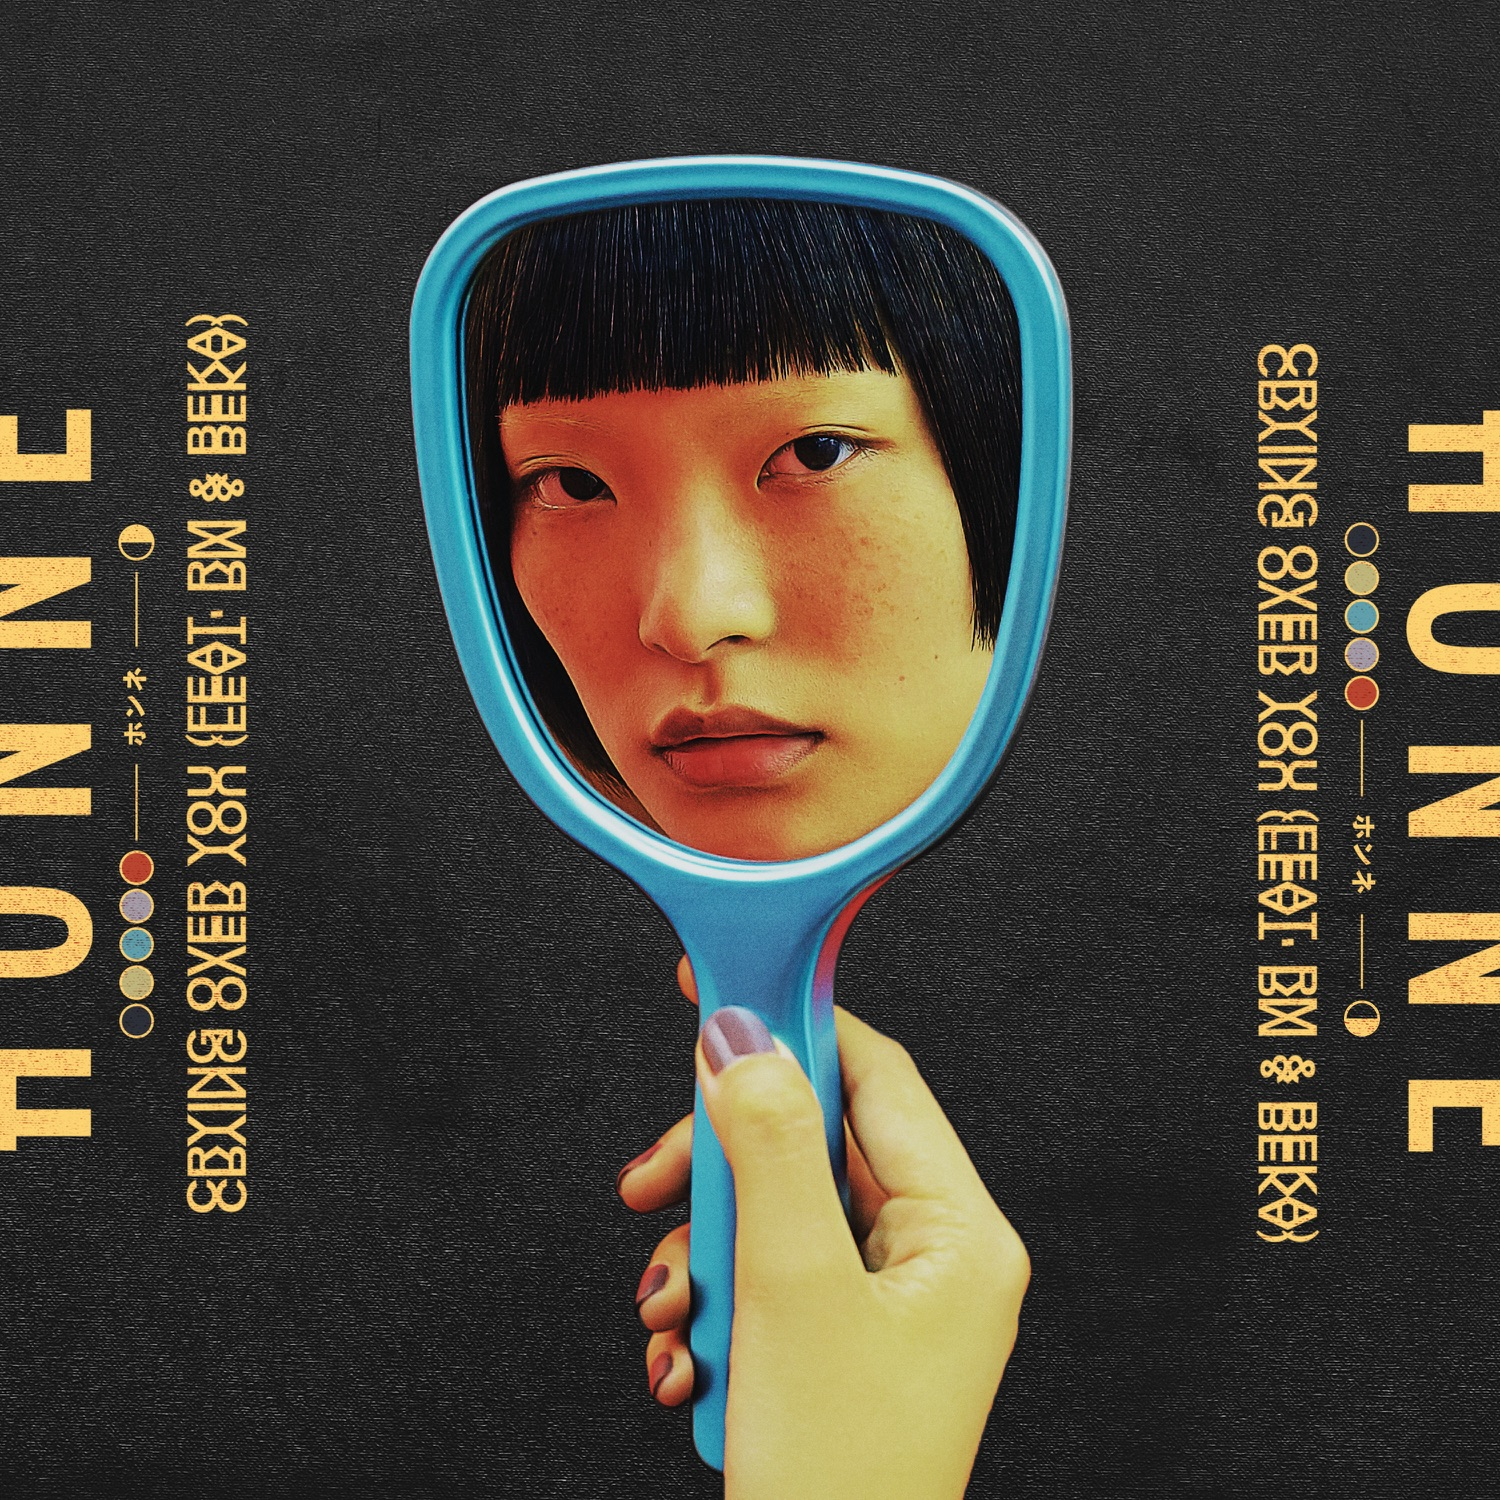 HONNE – Crying Over You ◐ (feat. RM & BEKA) – Single